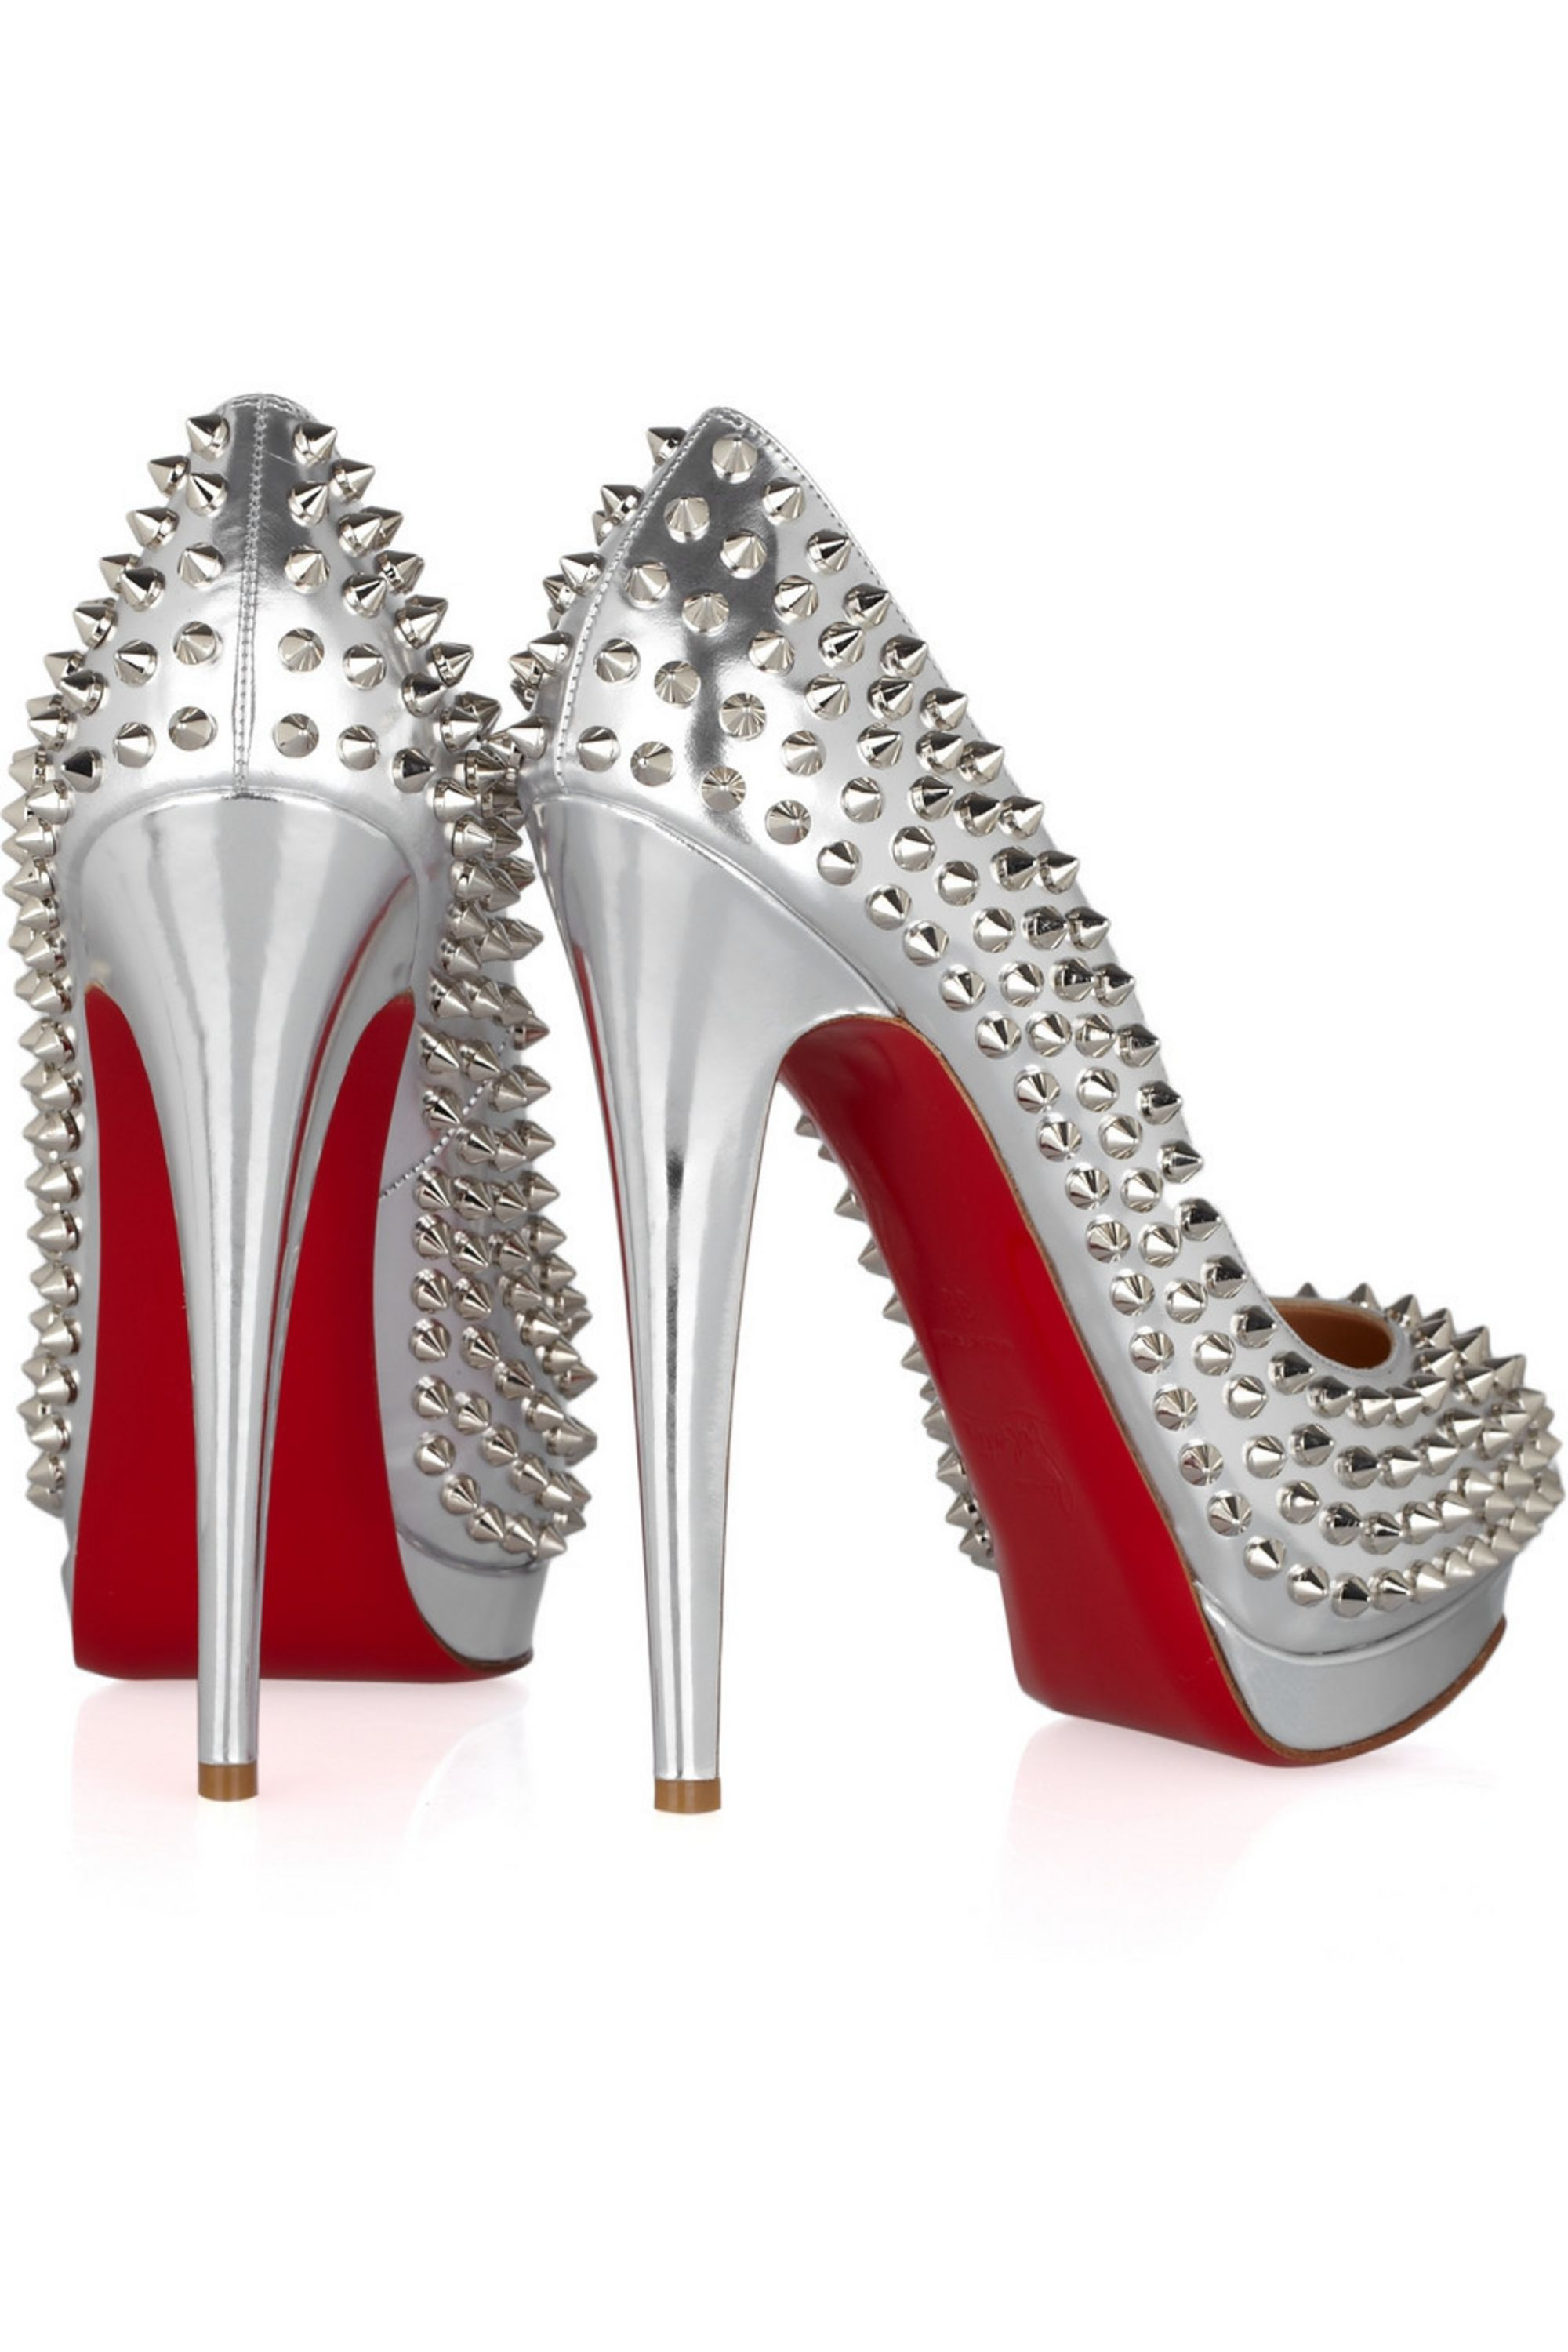 Christian Louboutin Alti 160 spiked metallic leather pumps